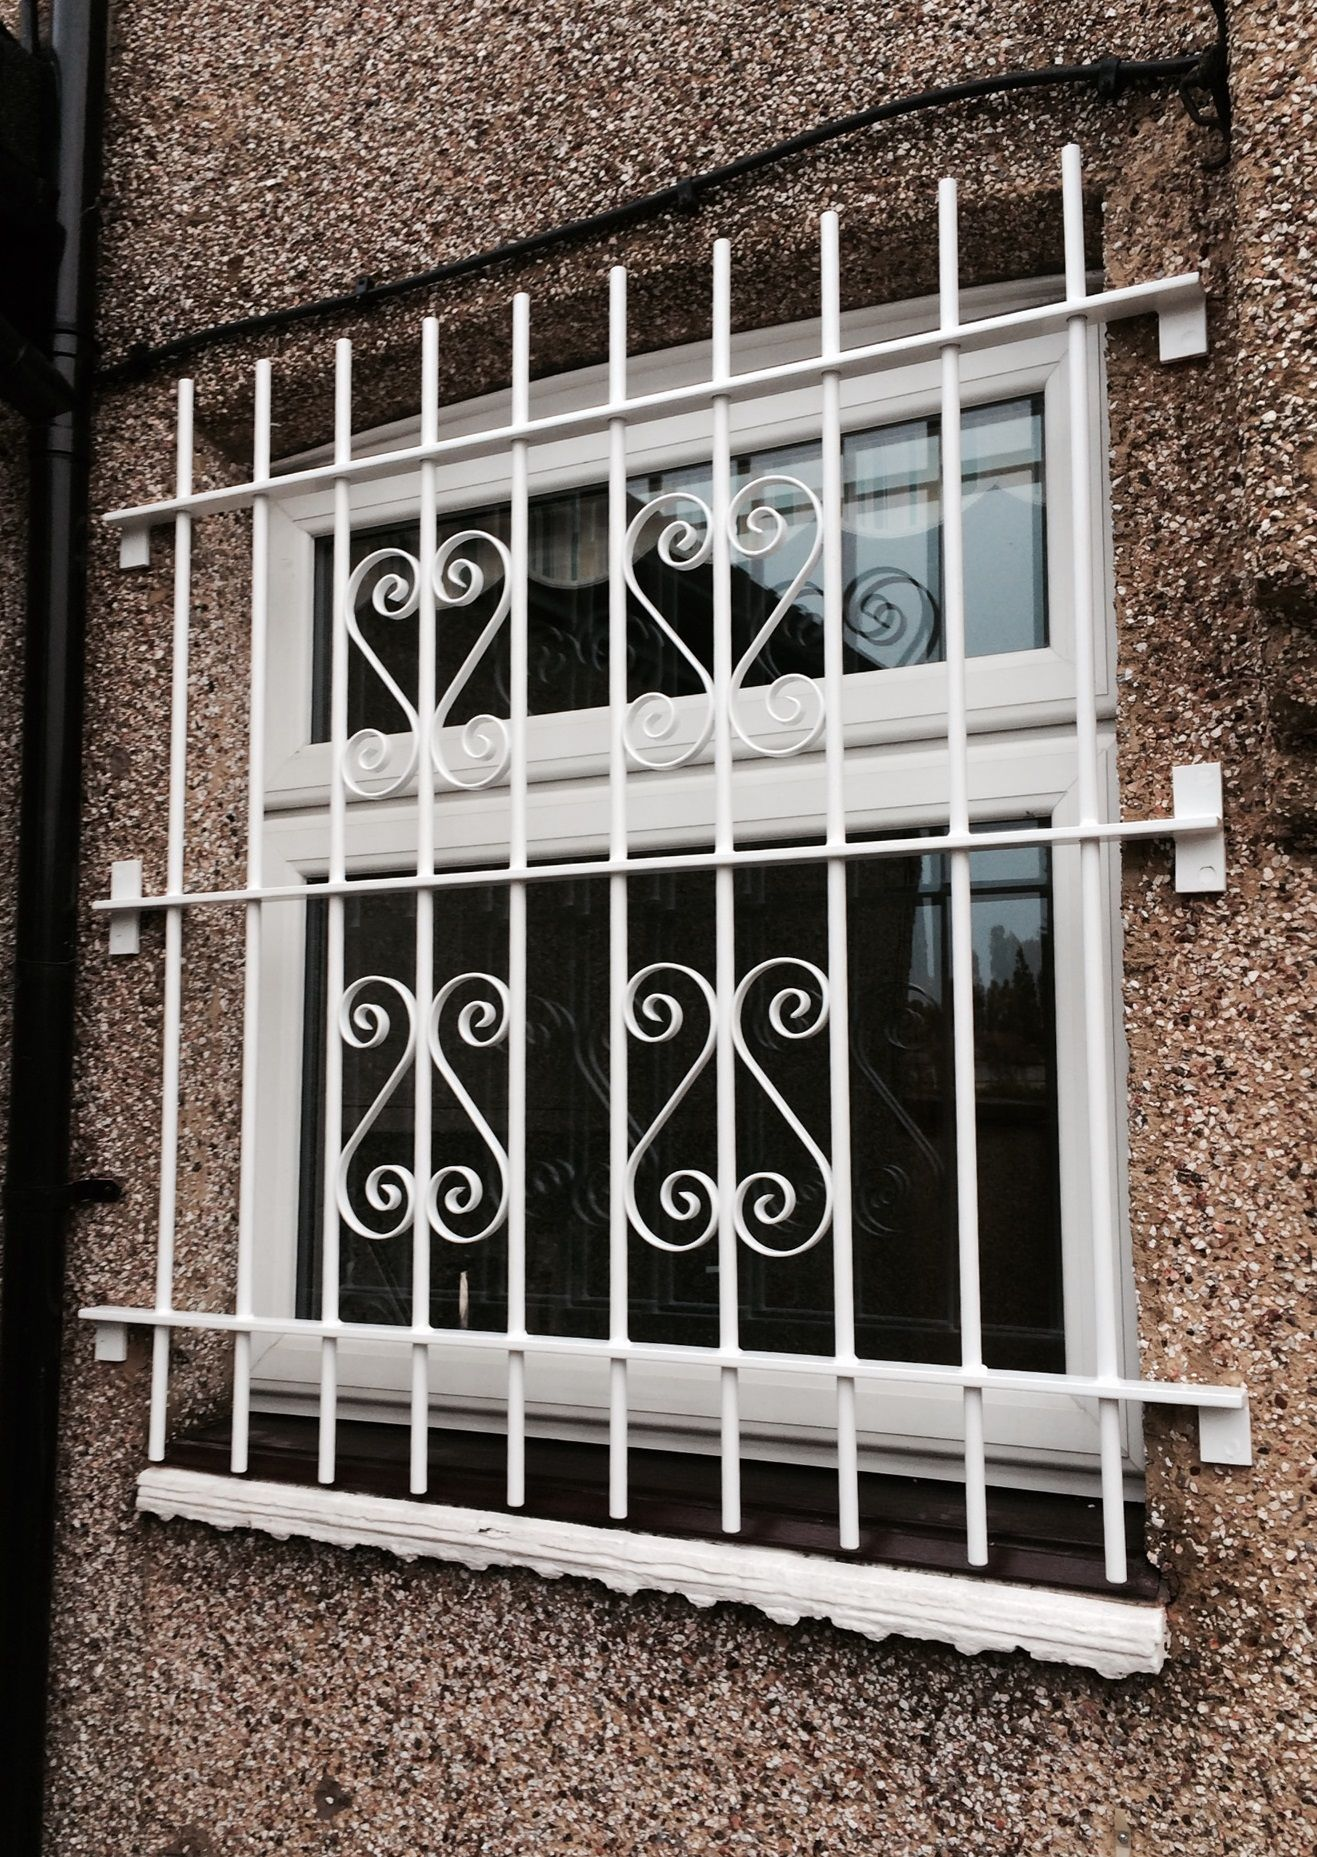 our rsg2000 window security bars securing a ground floor domestic house in greenford middlesex